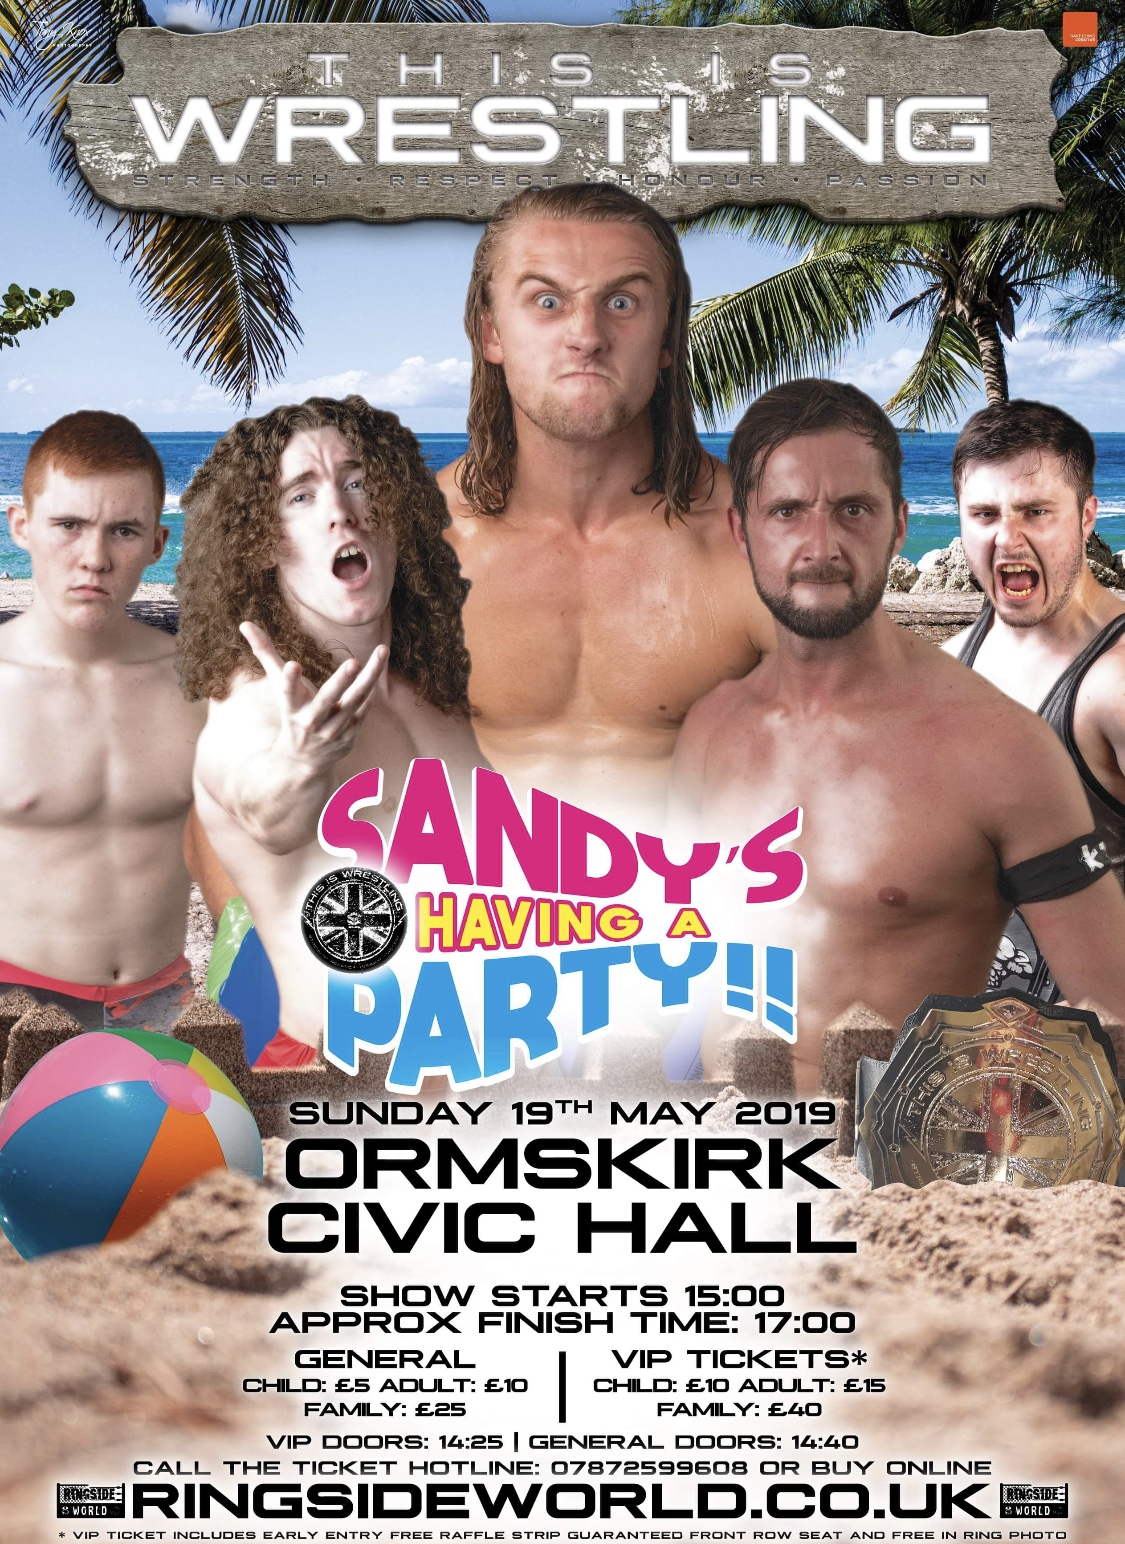 This Is Wrestling: Sandy's Having A Party  event description image